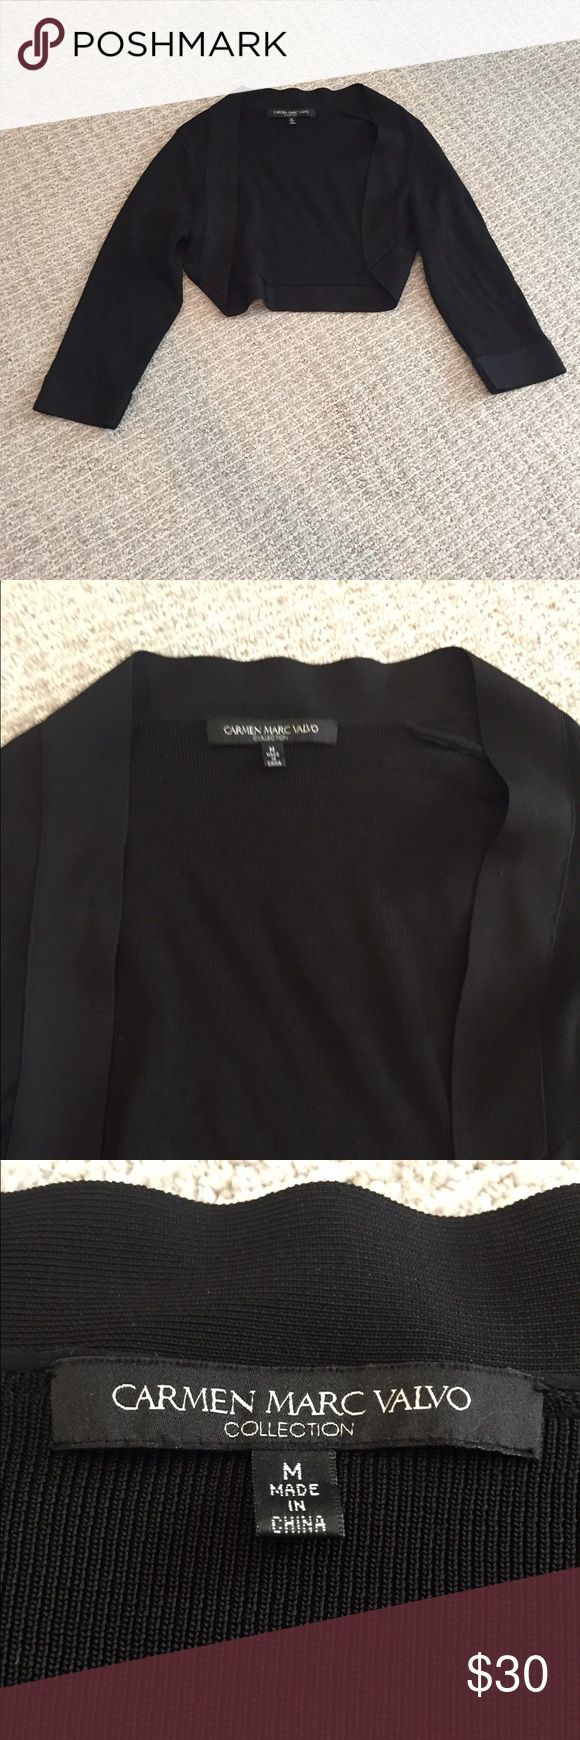 Carmen Marc Valvo Cropped Black Sweater! High fashion, perfect condition crop sweater for a fancy night out! Never worn. 95% Rayon, 5% Nylon. Carmen Marc Valvo Sweaters